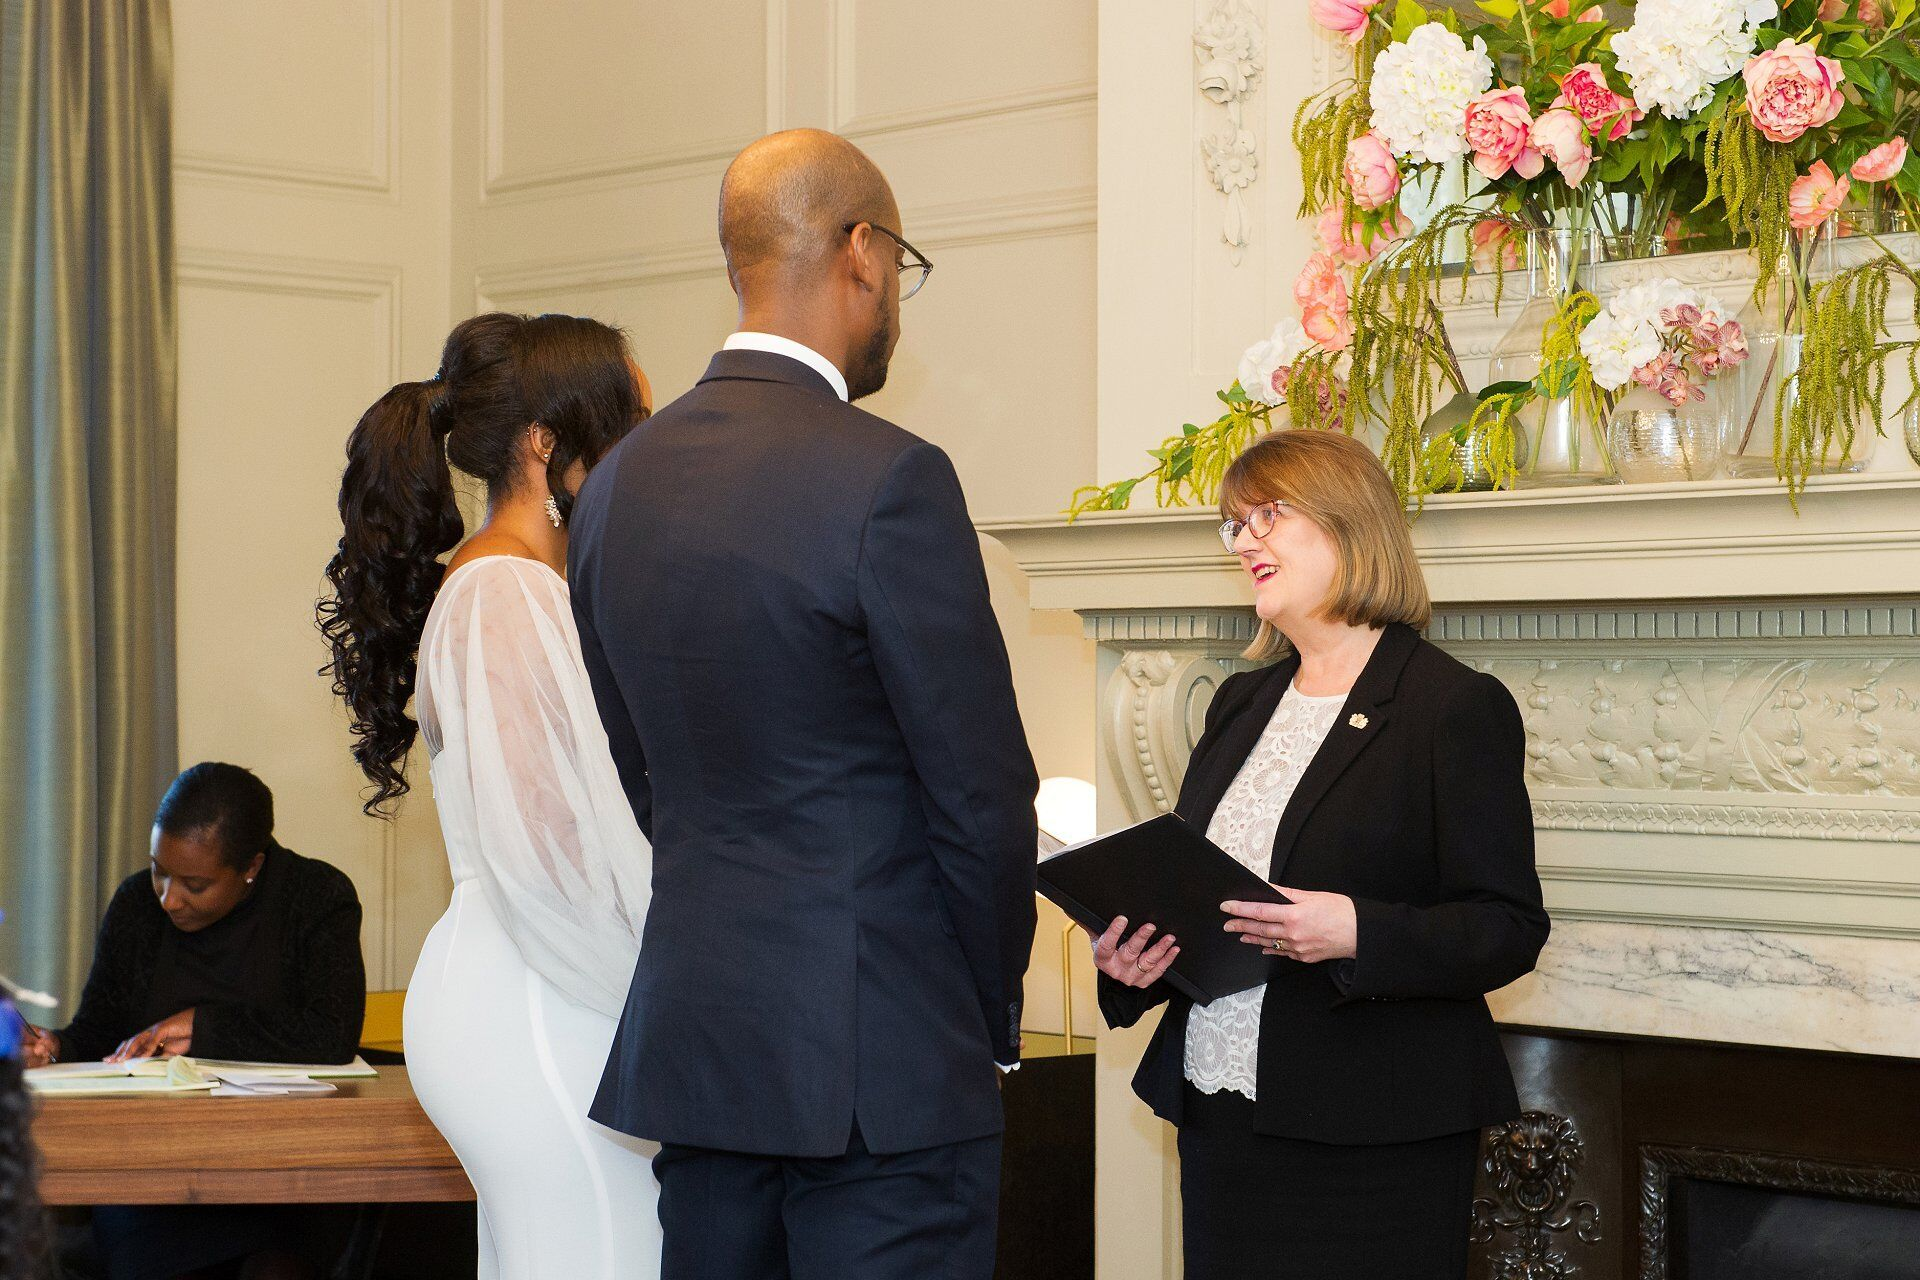 alison cathcart precides over a pimliso room wedding at old marylebone town hall